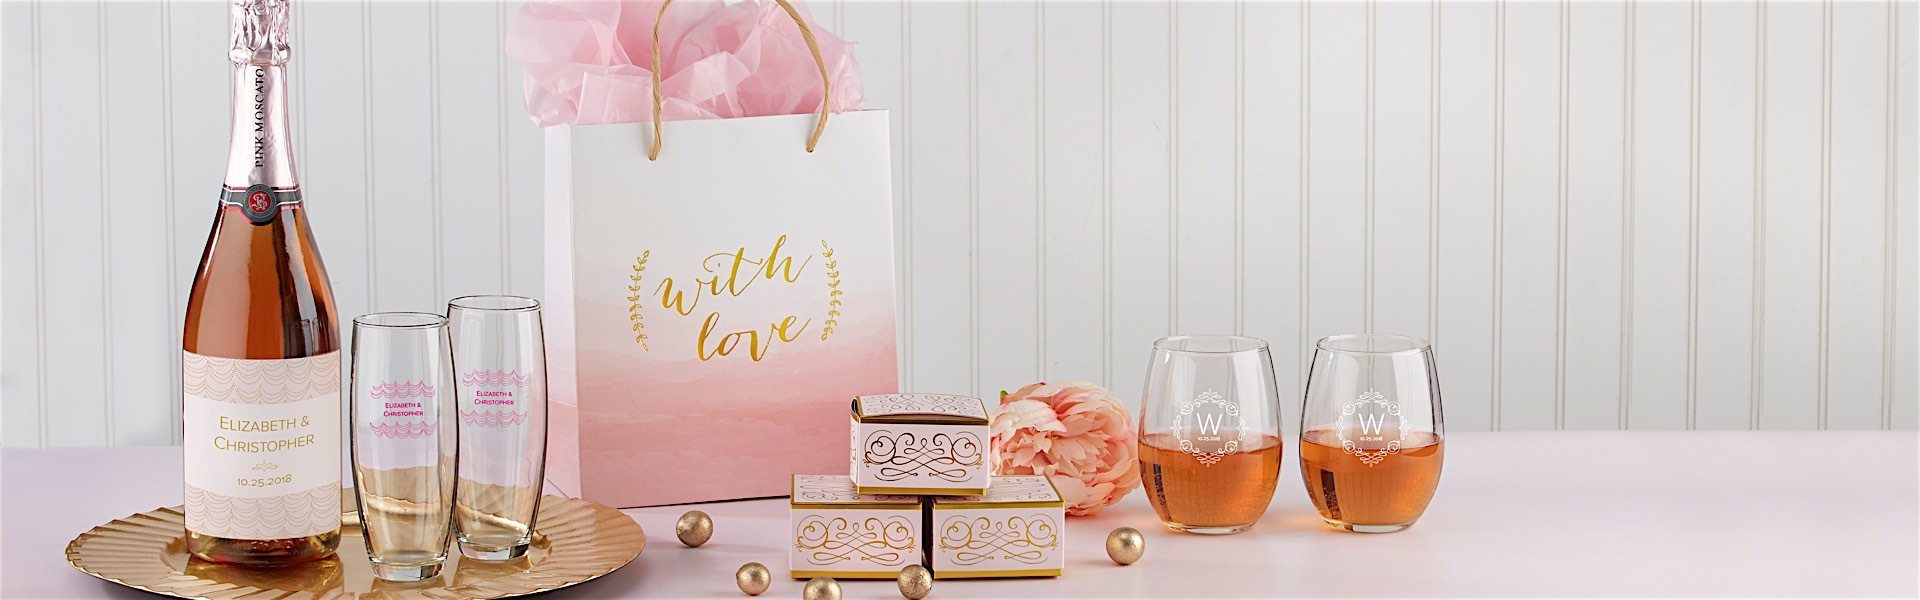 Kate Aspen Giveaway: Win $100 For Your Wedding - MODwedding